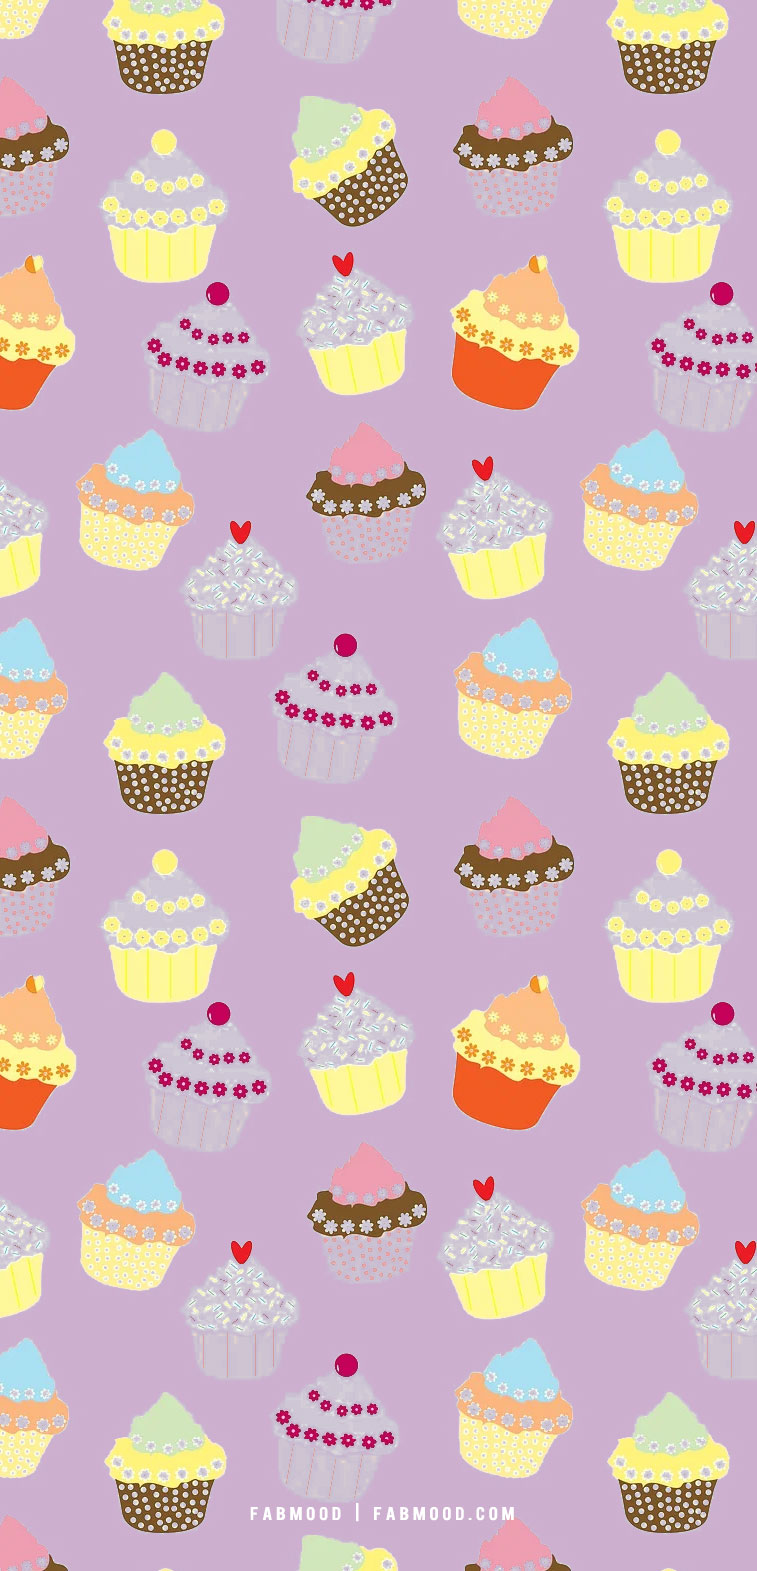 cupcake wallpaper, cupcake wallpaper for phone, cupcake wallpaper iphone, cupcake wallpaper screensaver, cupcake wallpaper lockscreen, cupcake wallpaper cute, cupcake wallpaper aesthetic